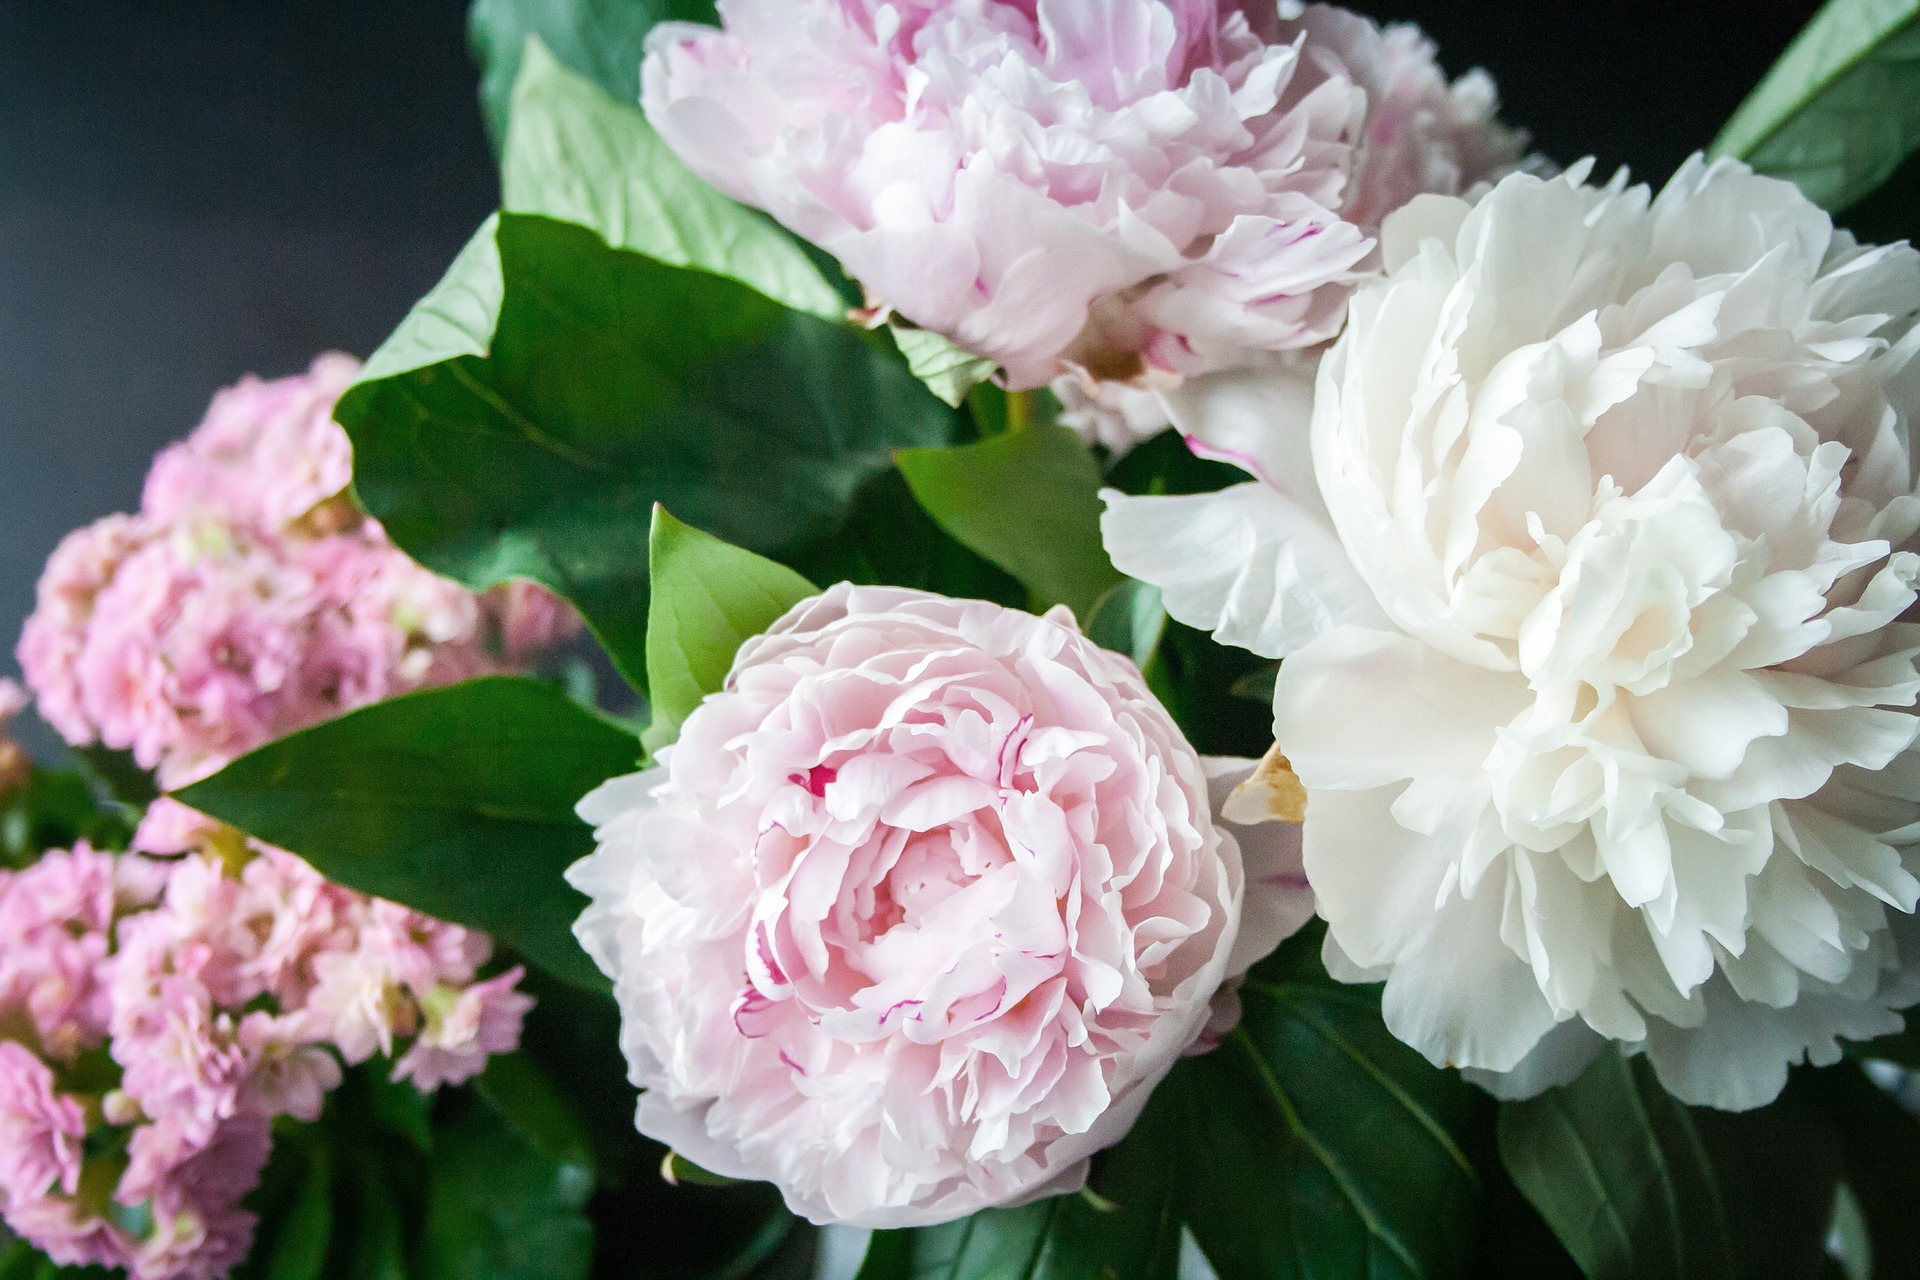 Planting a Field of Peonies